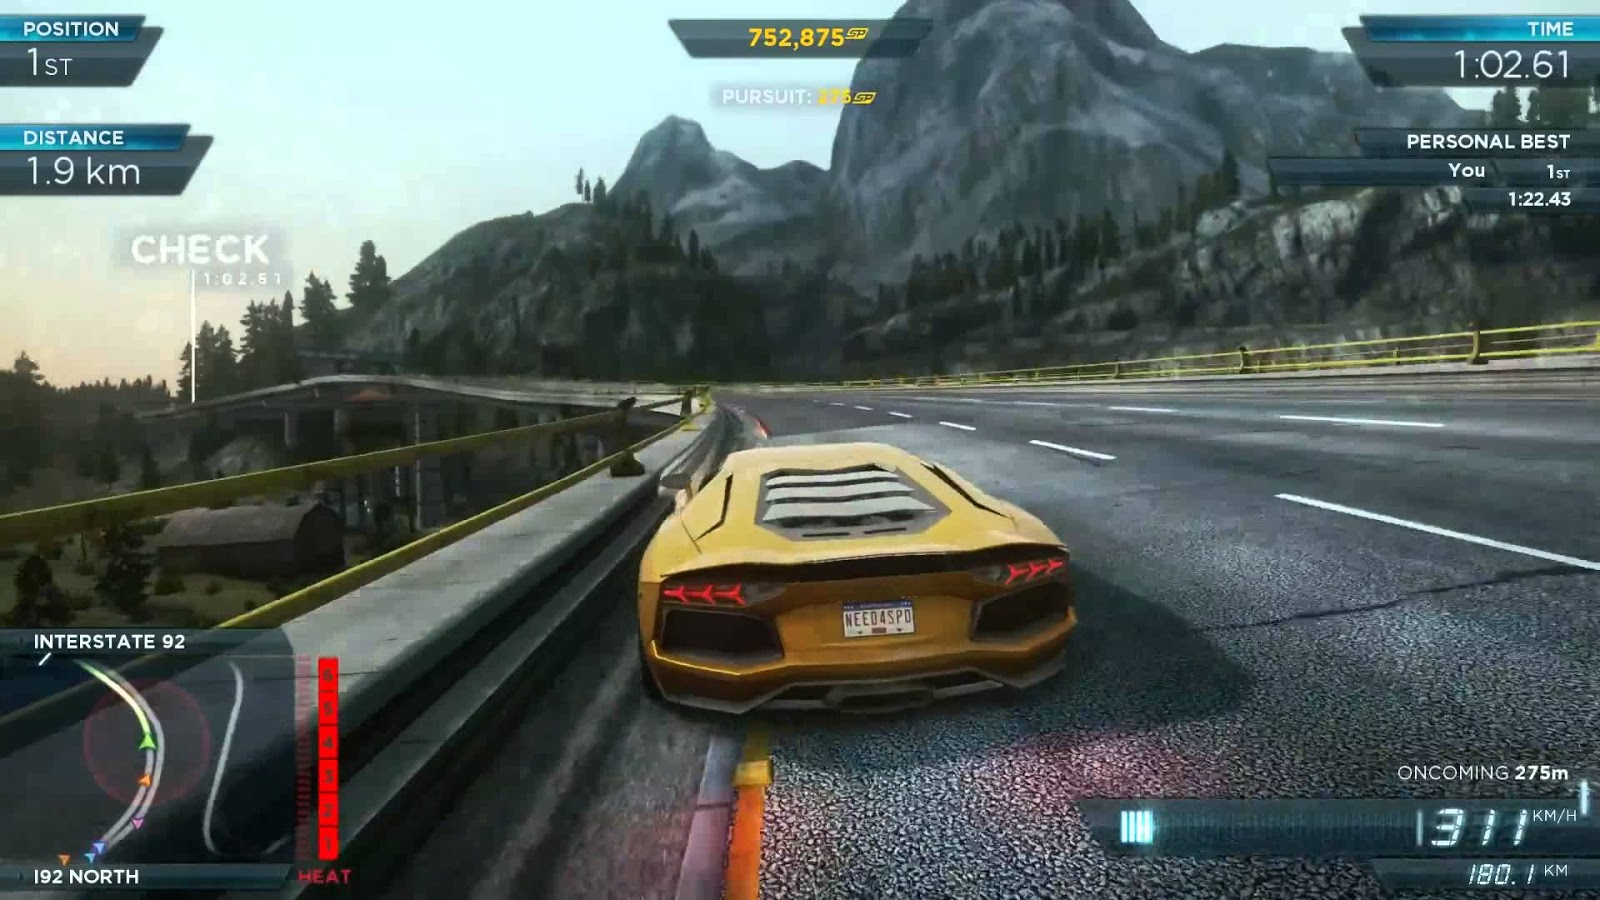 Need For Speed Most Wanted Apkdata For Android